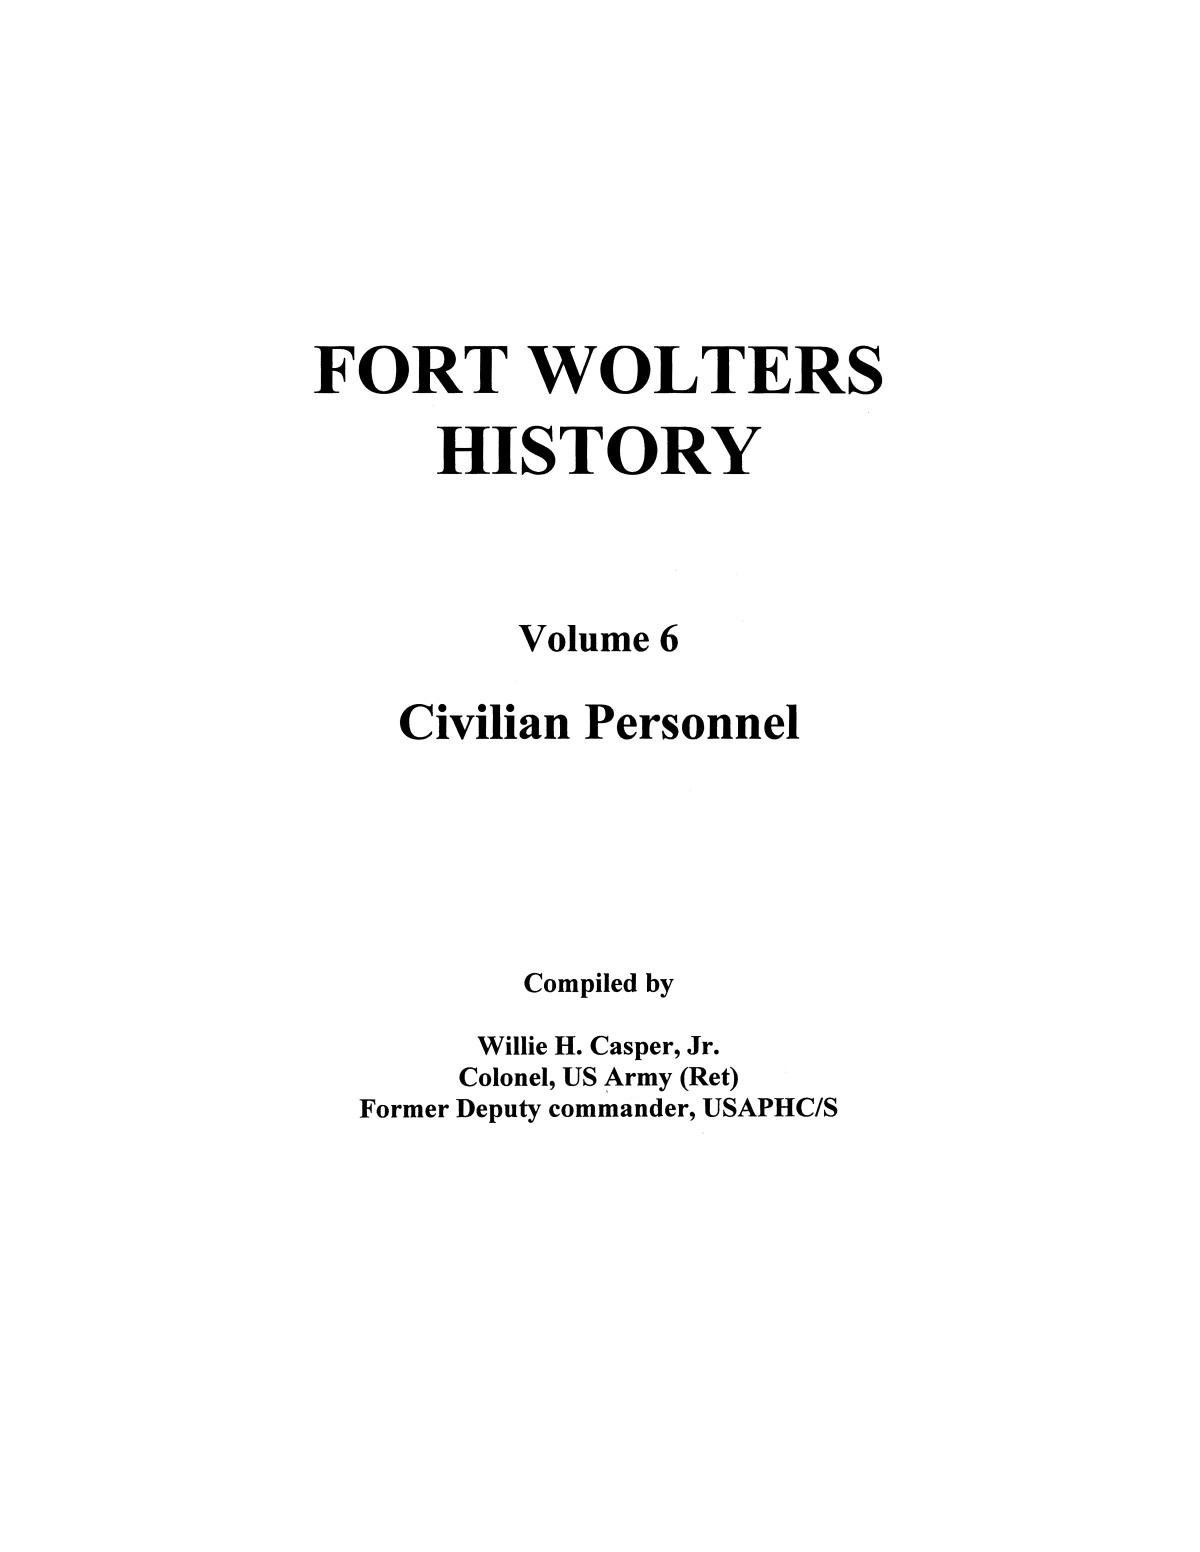 Pictorial History of Fort Wolters, Volume 6:  Civilian Personnel                                                                                                      [Sequence #]: 1 of 156